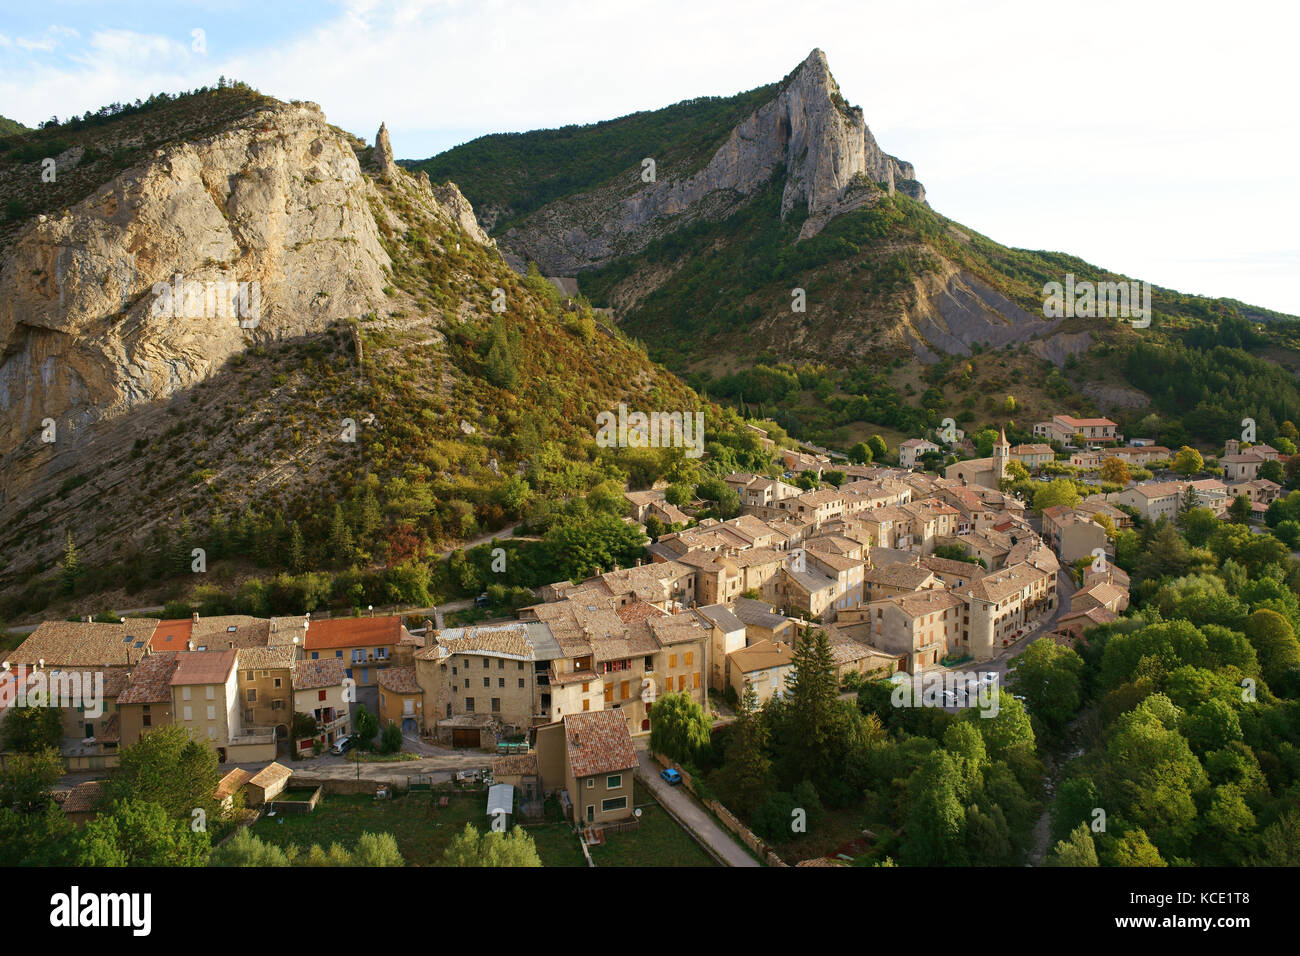 PICTURESQUE VILLAGE OF ORPIERRE, A WELL KNOWN SPOT FOR CLIMBING ENTHUSIASTS. Hautes-Alpes, France. - Stock Image